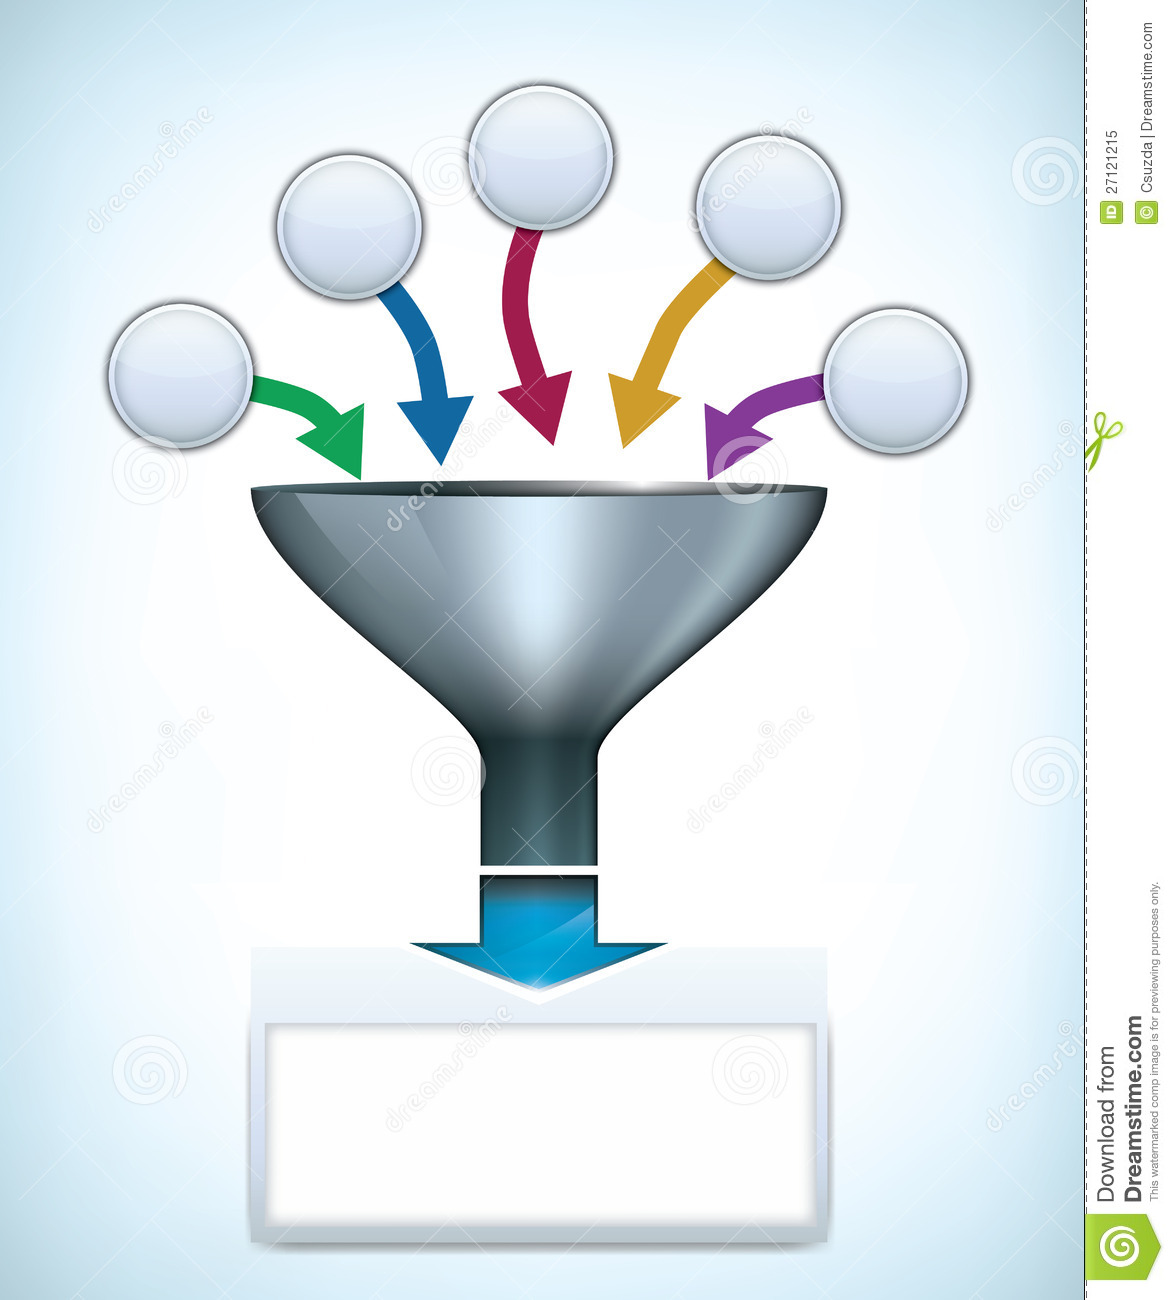 Funnel Presentation Template Royalty Free Stock Photo - Image ...